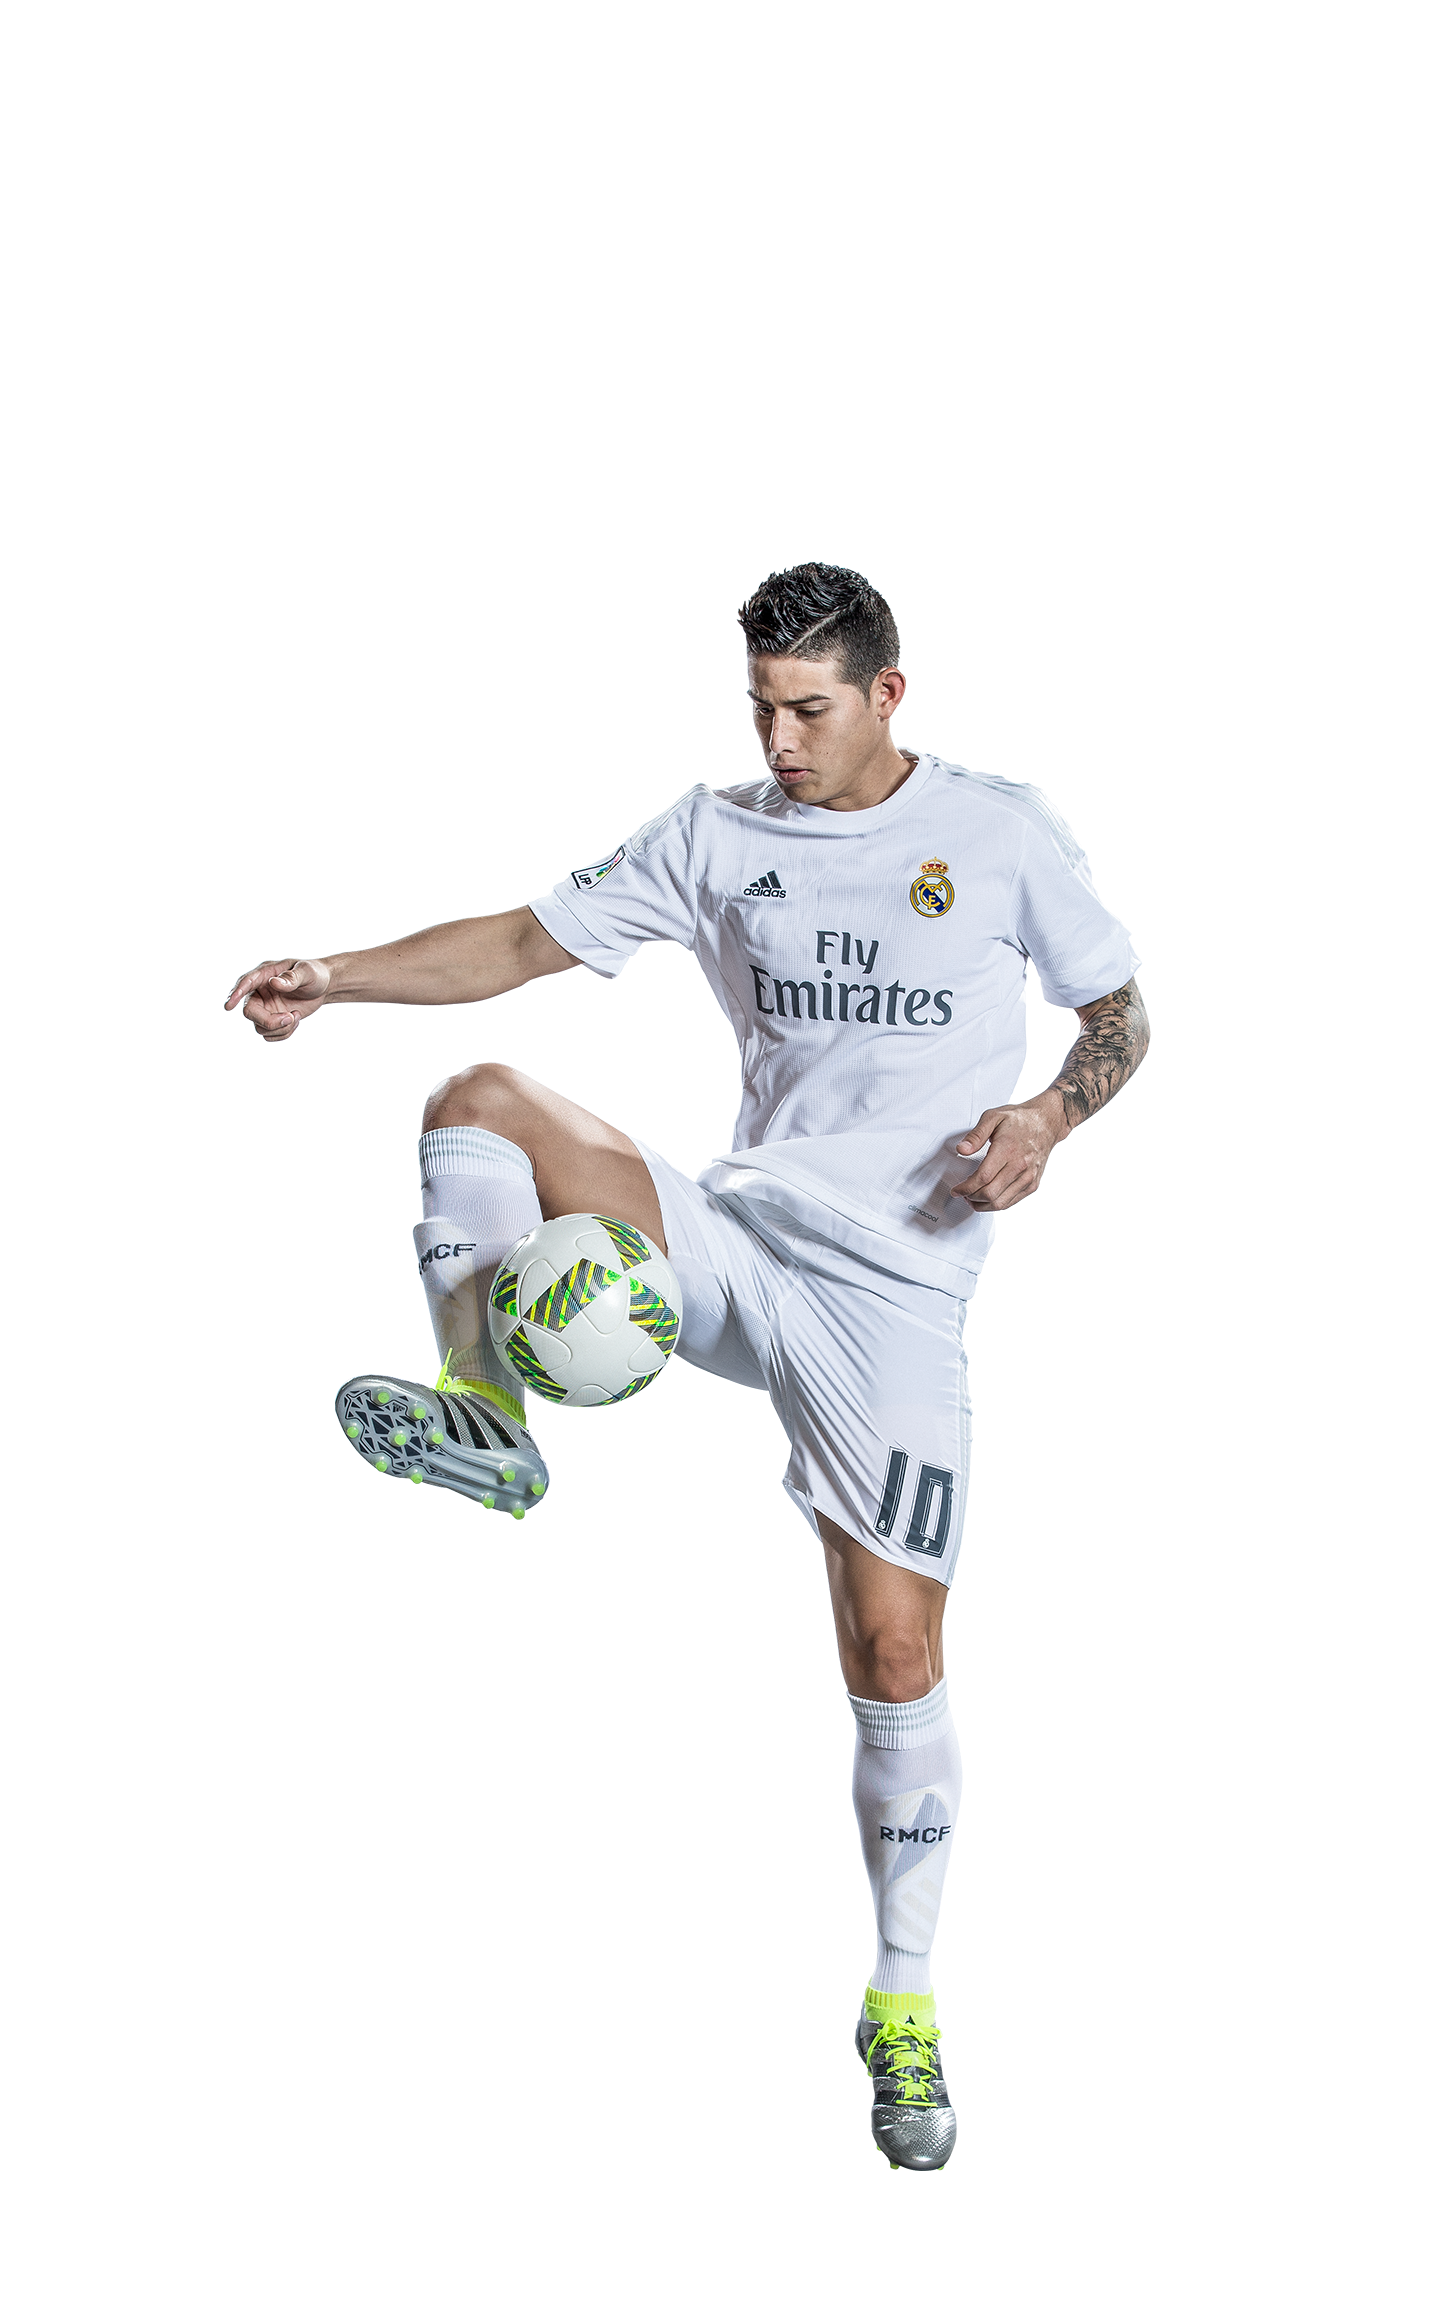 Vote For James Rodriquez To Appear On Fifa 17 Cover R Realmadrid James Rodriquez James Rodriguez Fifa 17